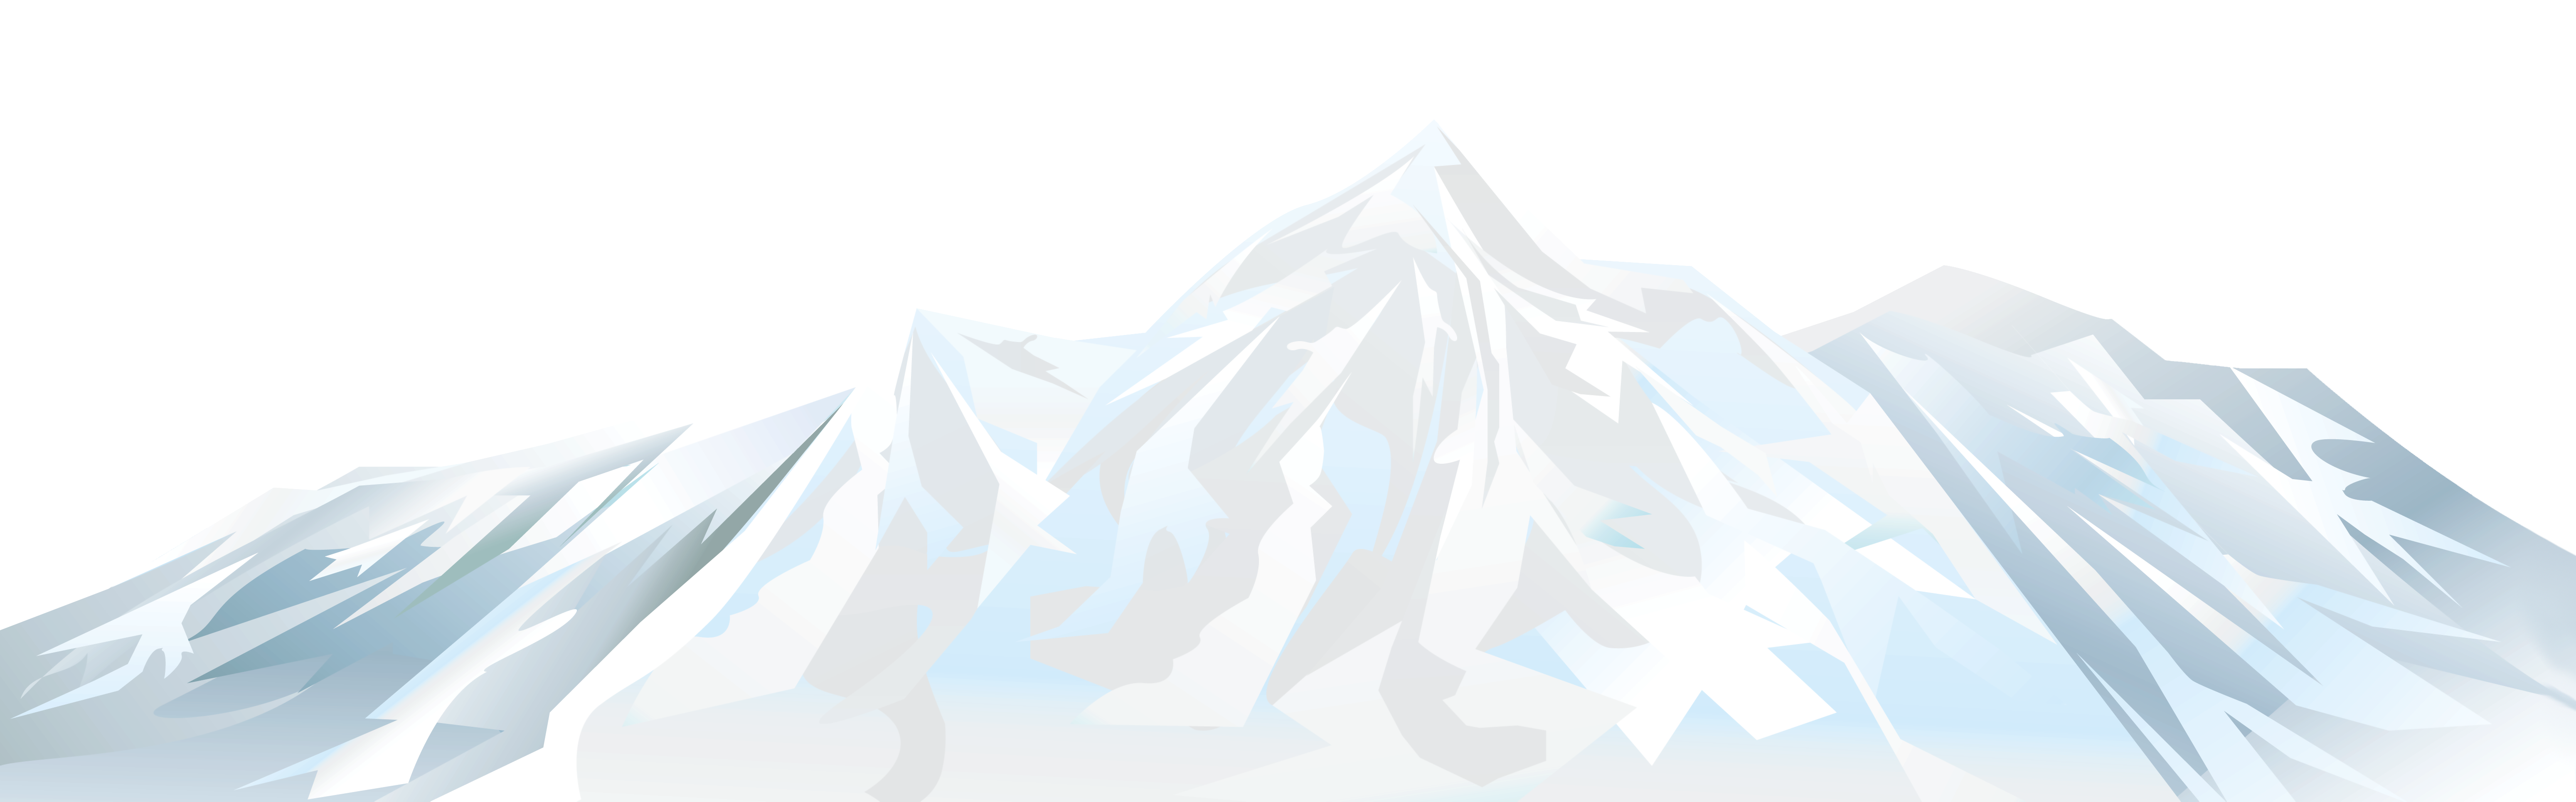 graphic download Drawing snow mountain.  png for free